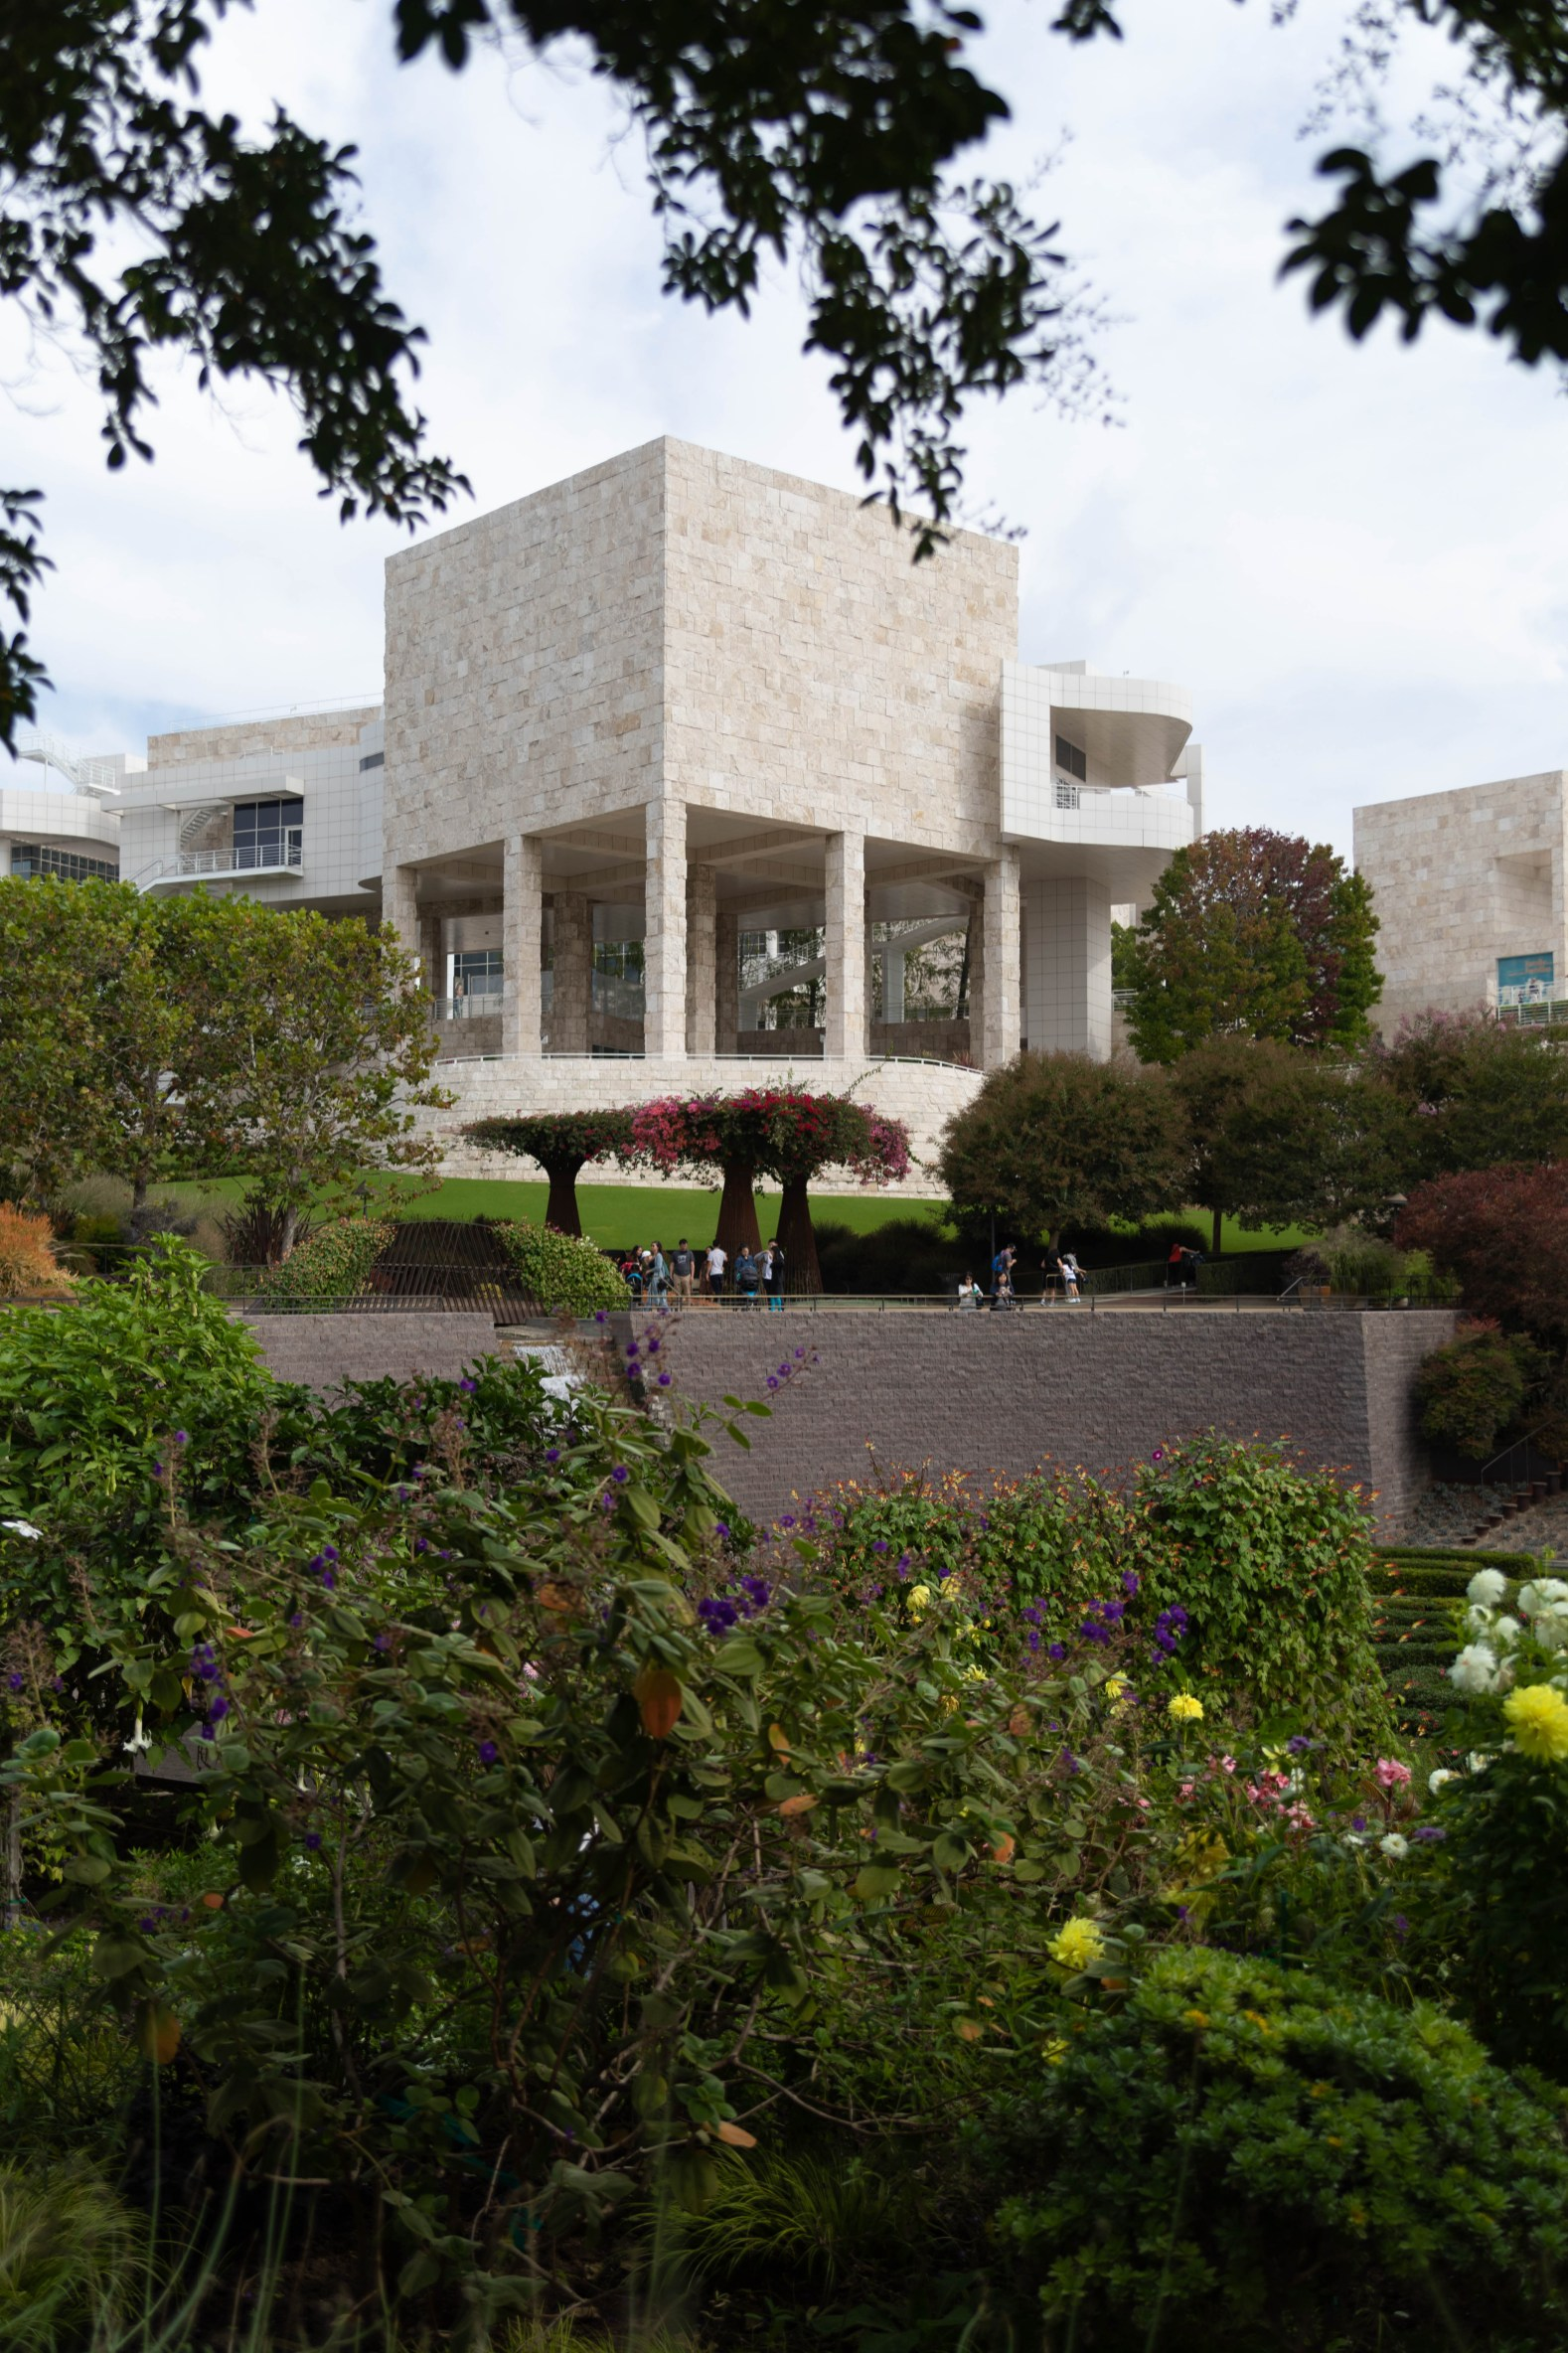 The Getty Museum in Los Angeles Incredible Architecture and Outdoor Gardens